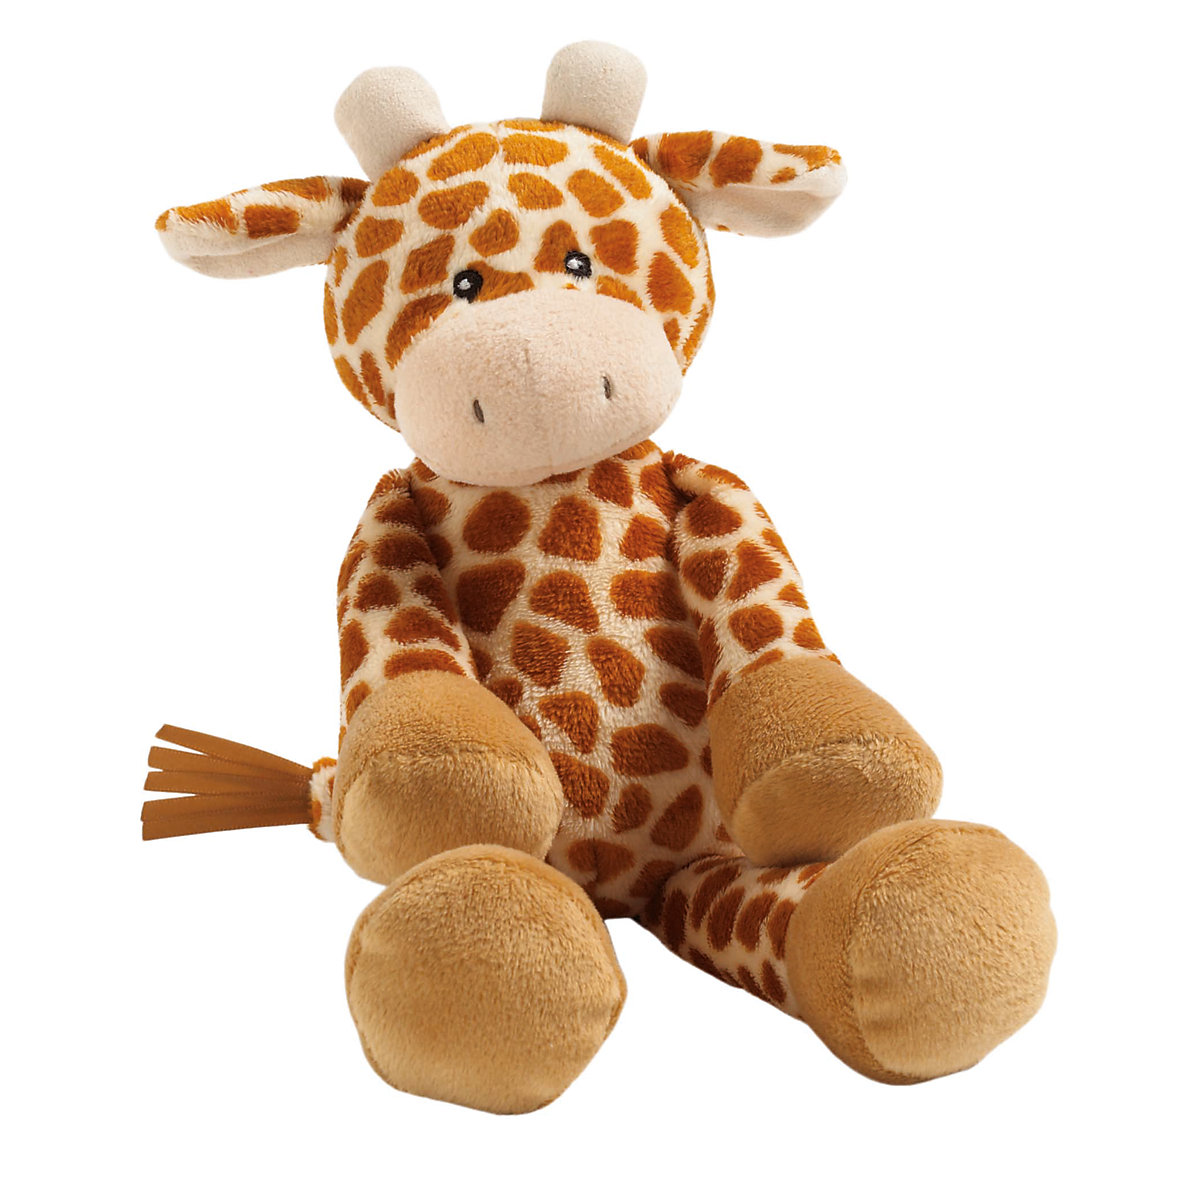 Mothercare Giraffe Soft Toy - Soft Toy Gifts